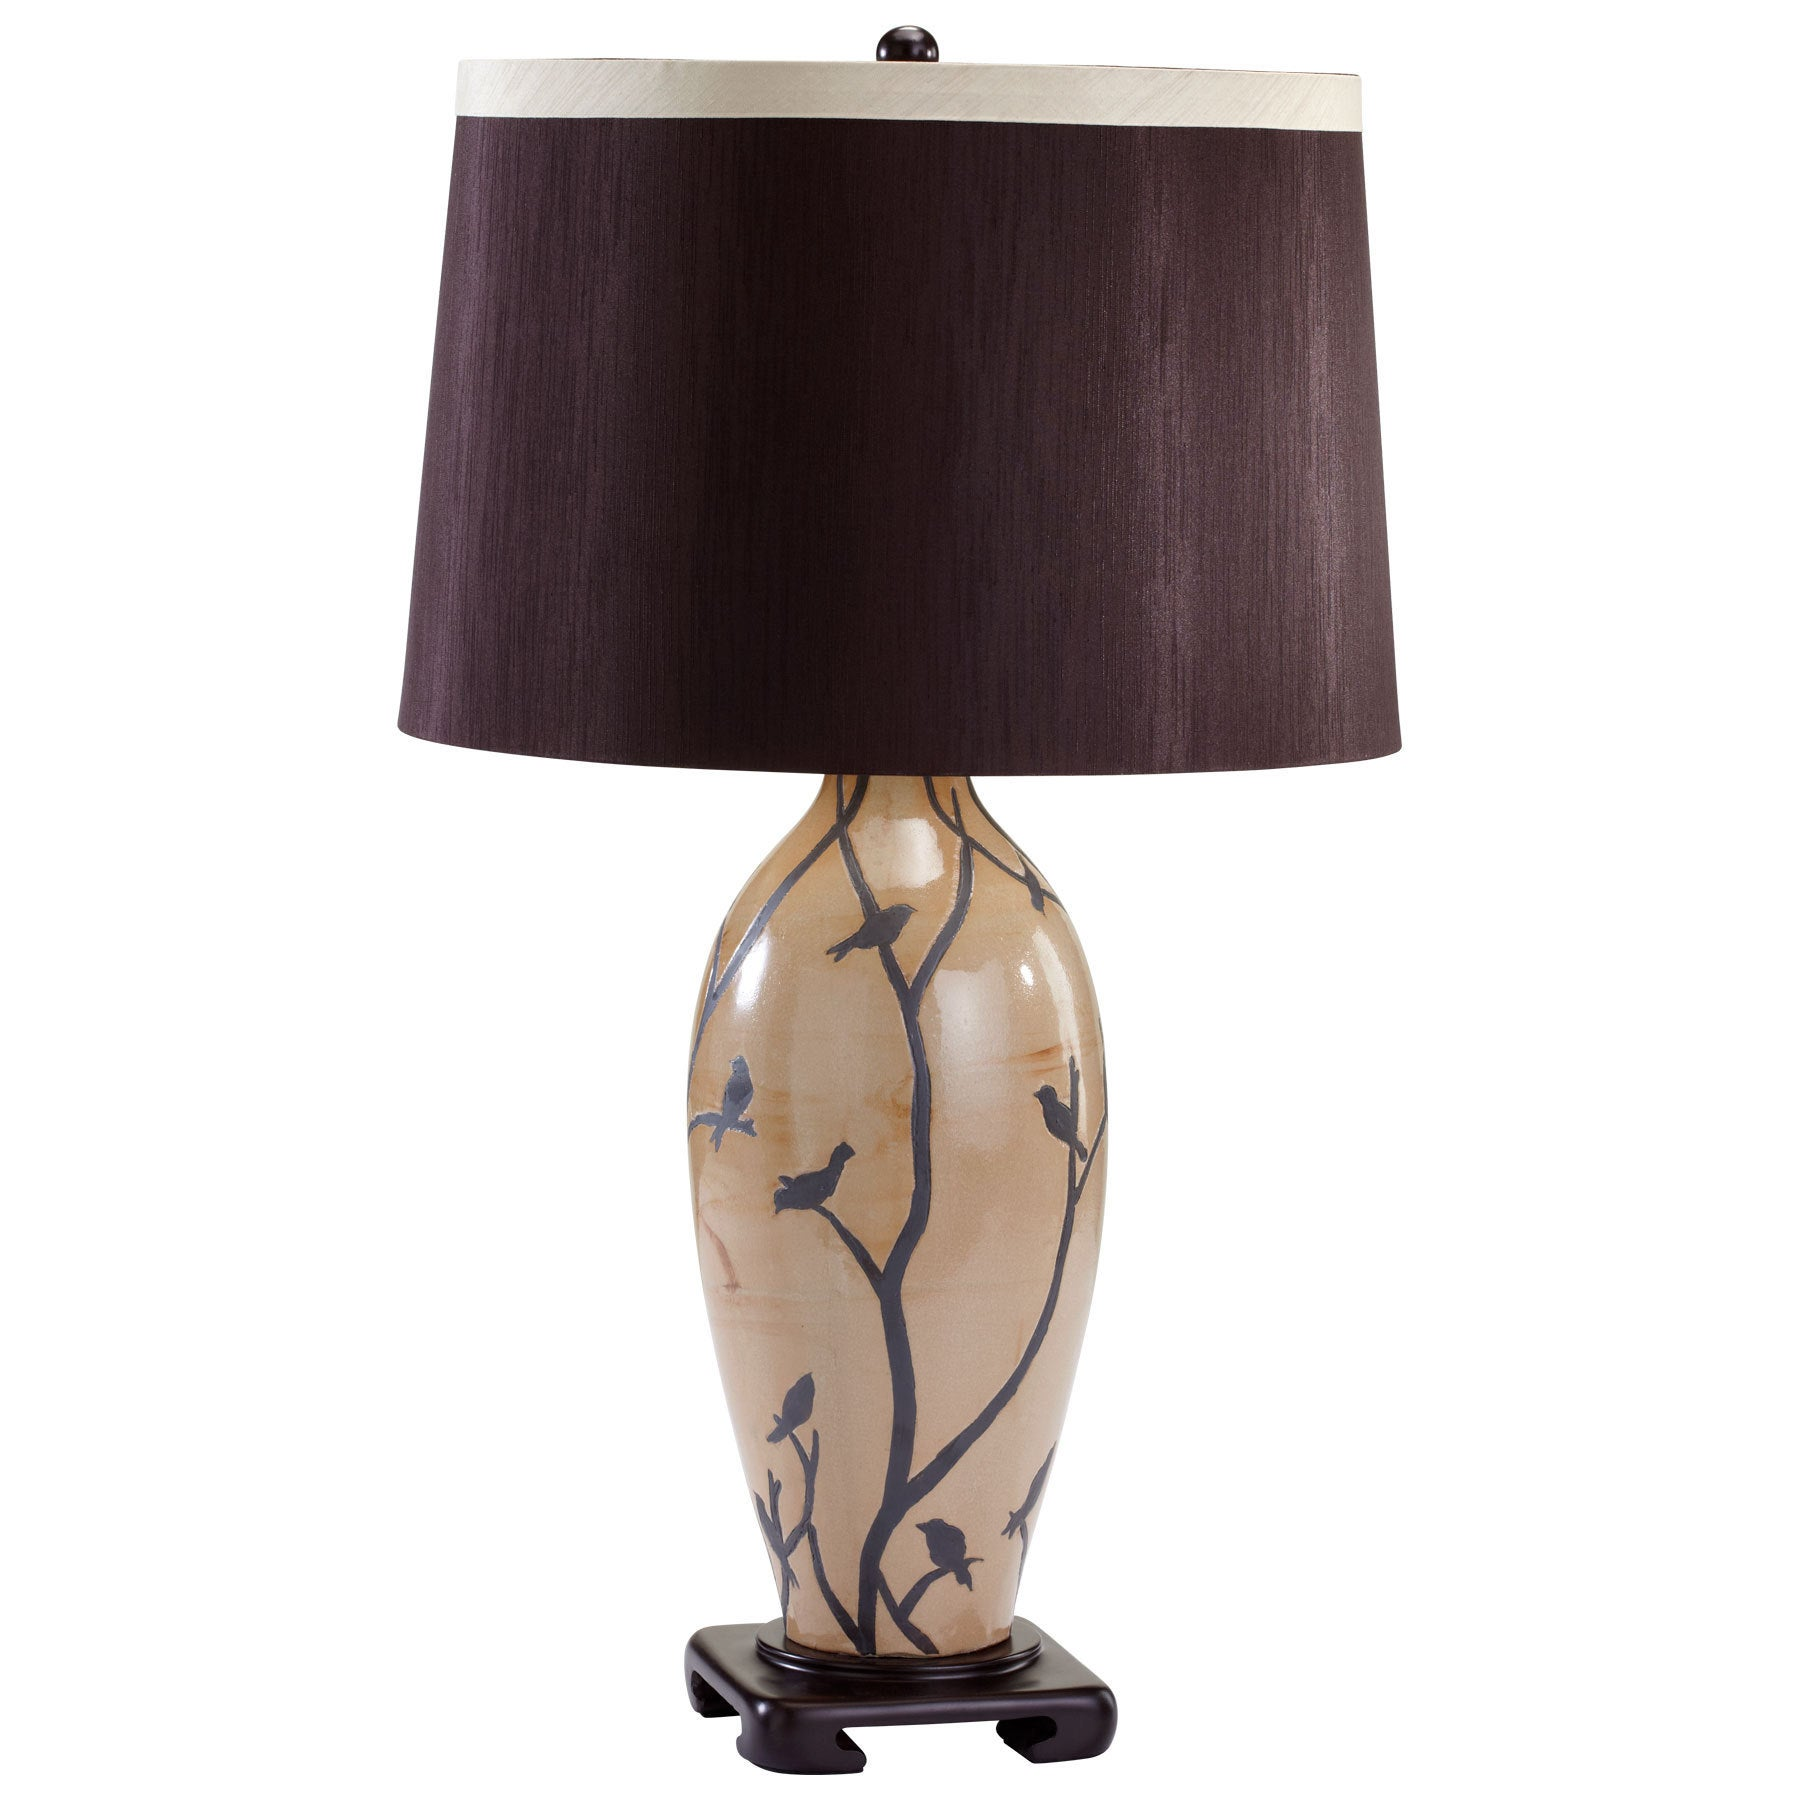 Cyan Design 'Beijing' Tan Bird and Branch Ceramic Table Lamp at Sears.com